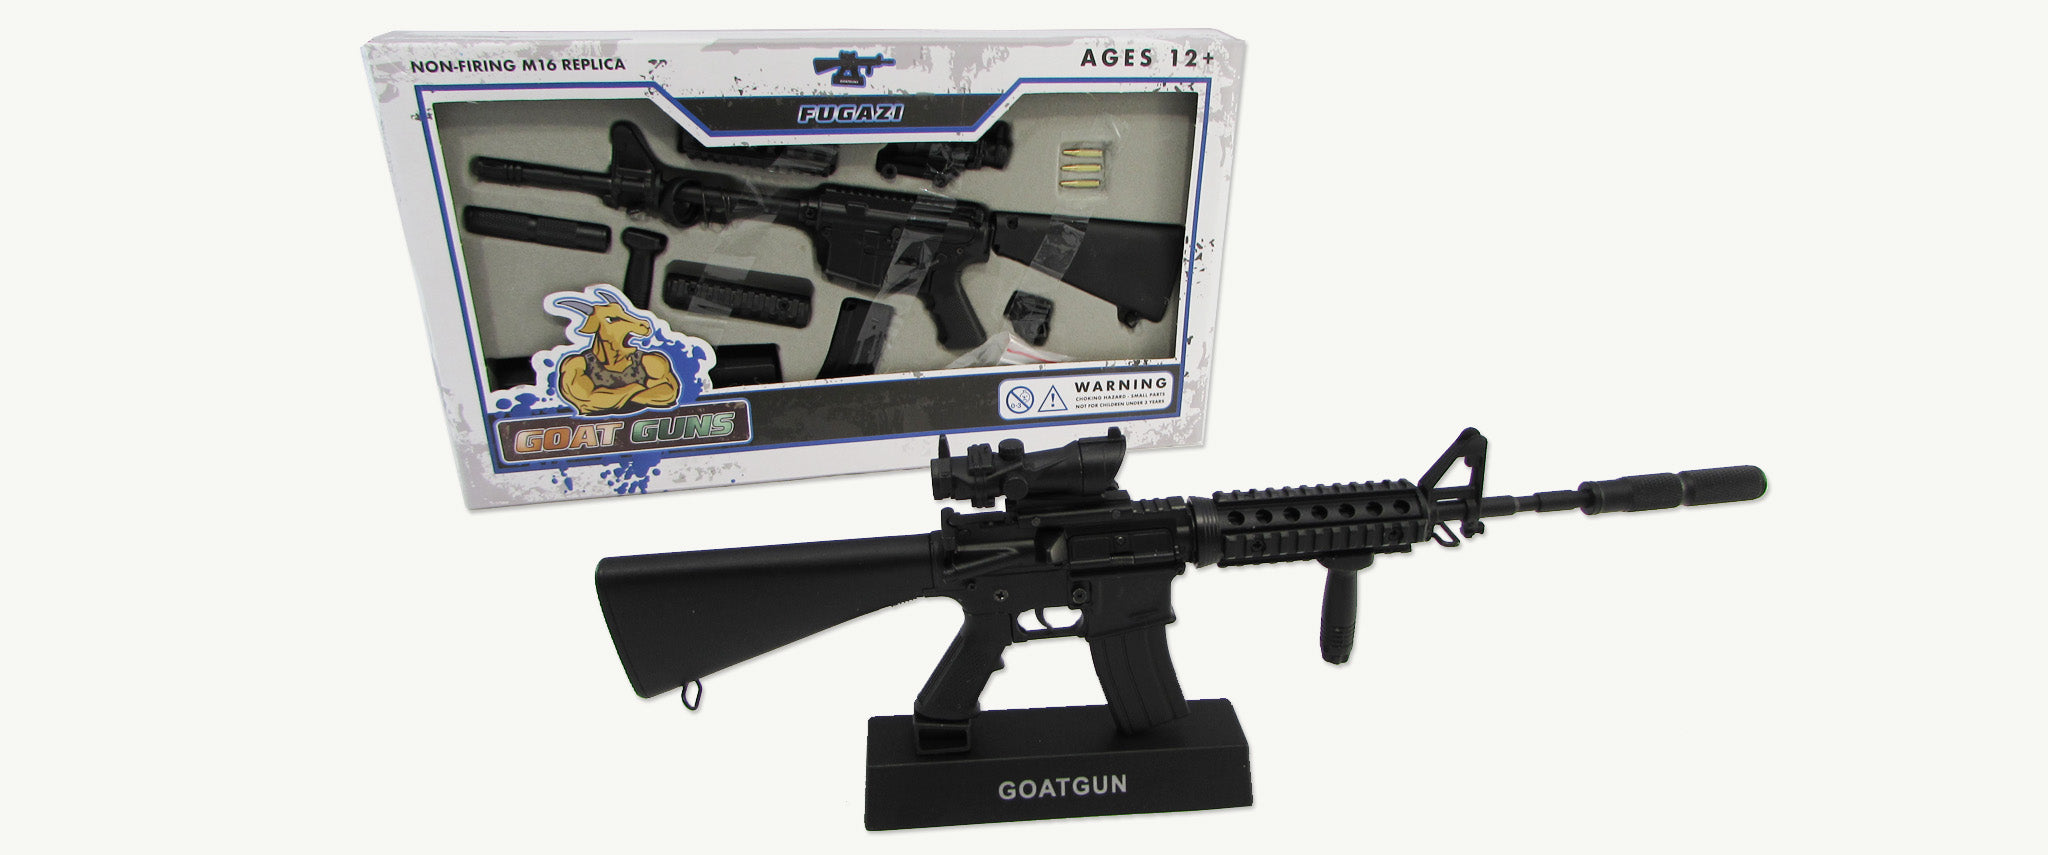 M16 Replica with Goatgun box